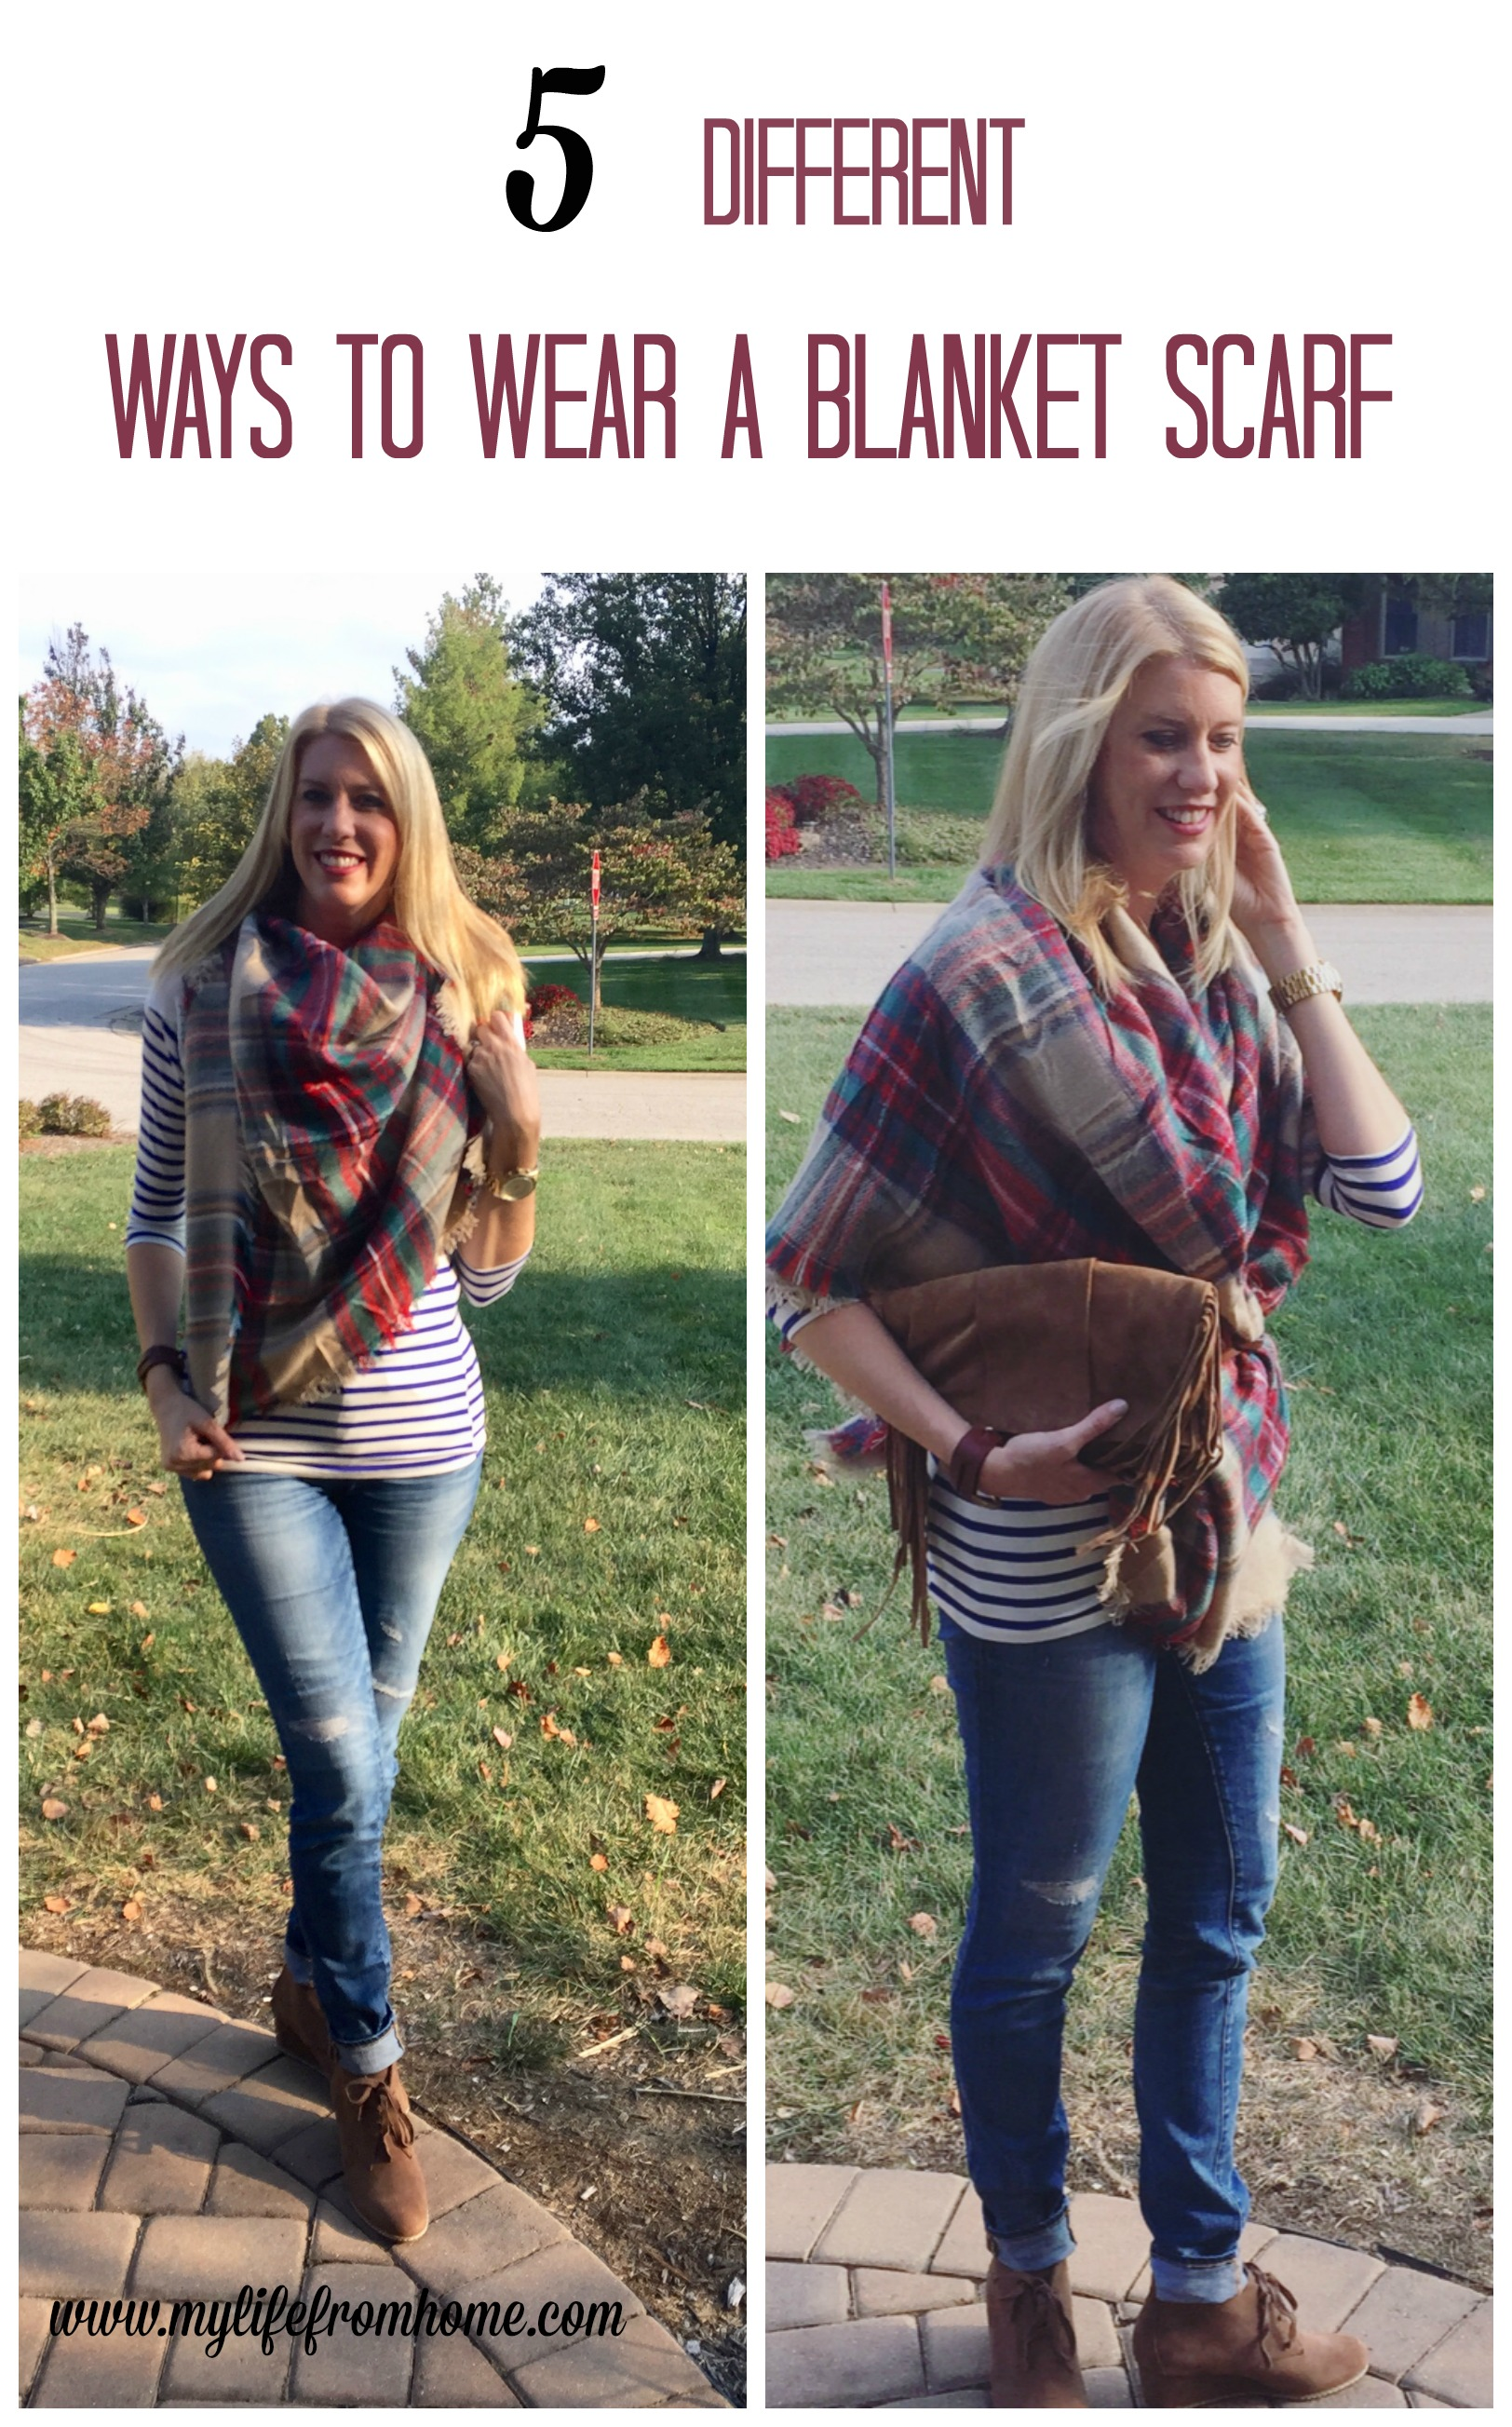 5-different-ways-to-wear-a-blanket-scarf-blanket-scarf-accessories-scarves-fall-fashion-womens-fashion-wardrobe-helpers-accessorizing-outfits-blanket-scarves